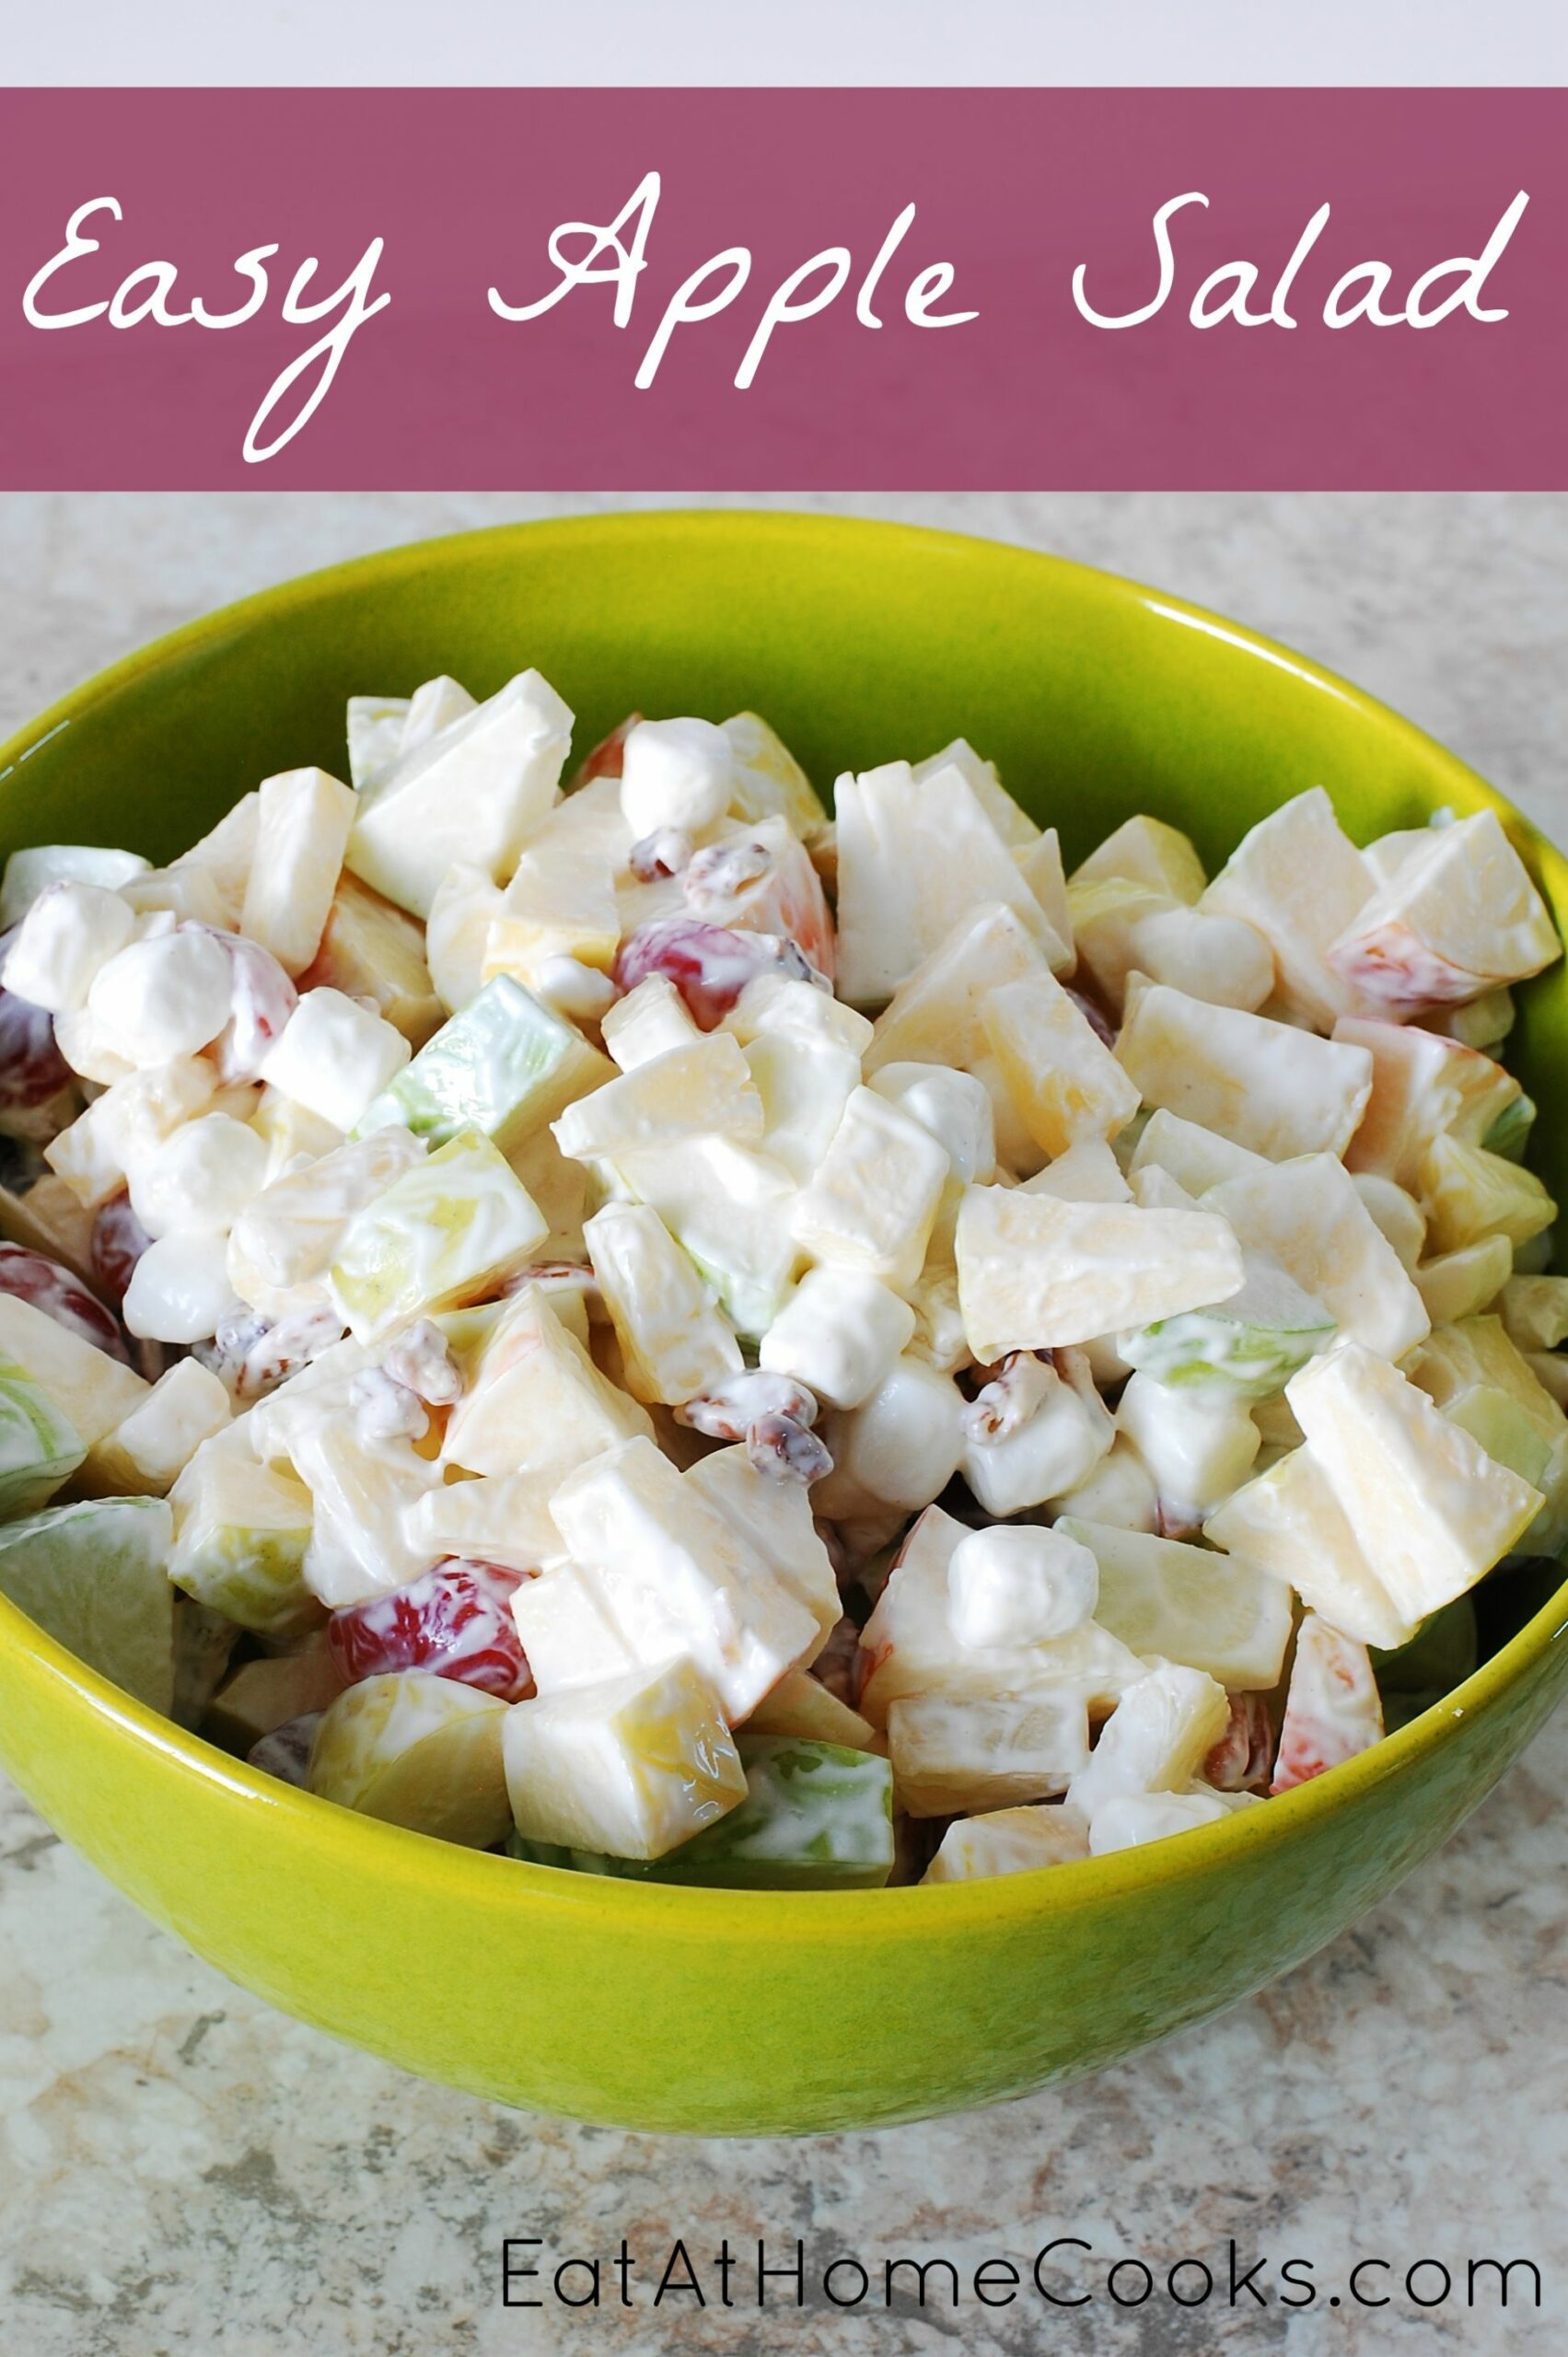 Easy Apple Salad - Recipes Salad With Apples